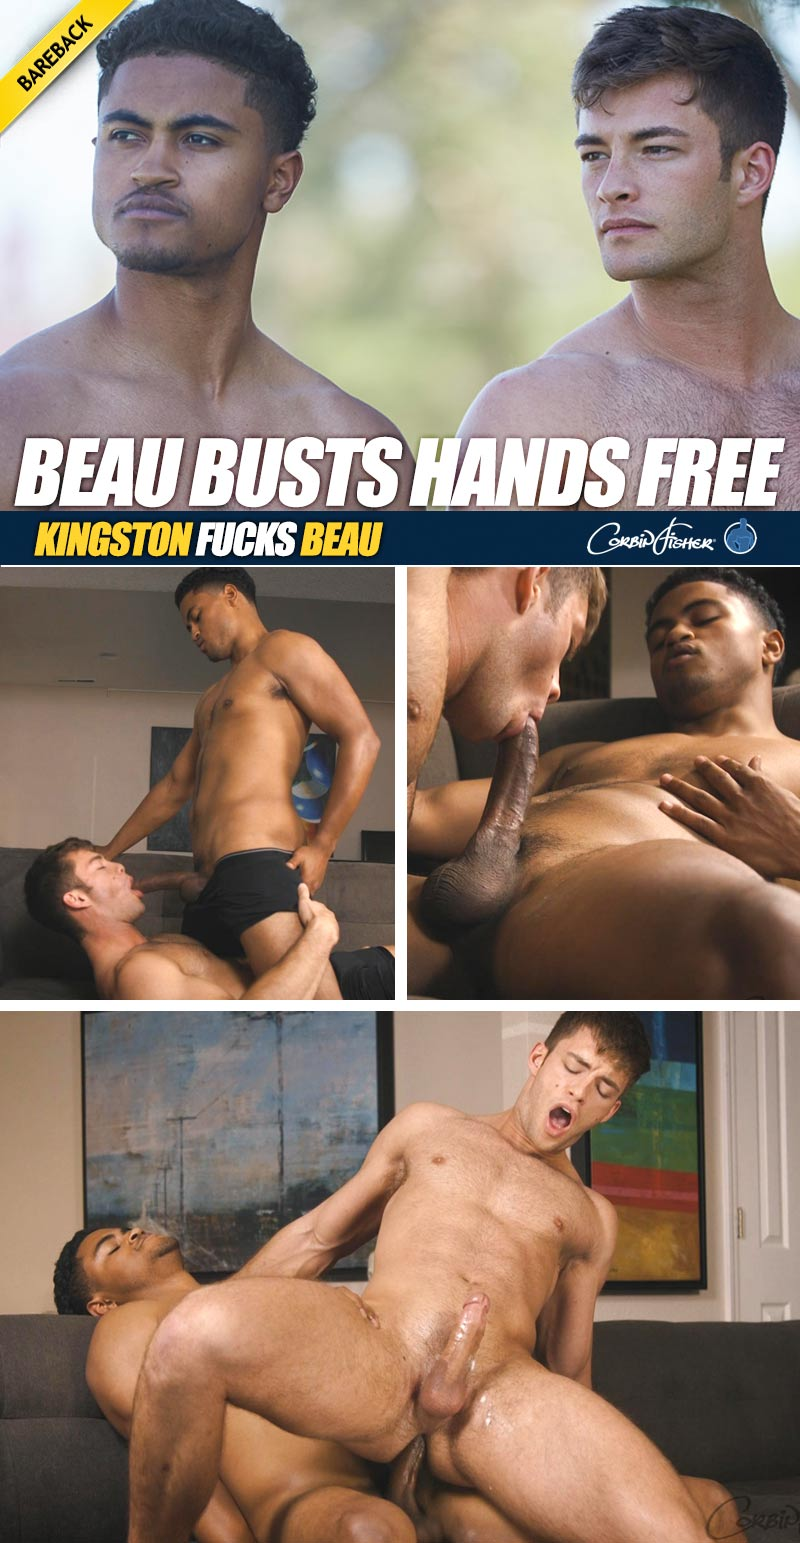 Kingston Fucks Beau (Bareback) at CorbinFisher